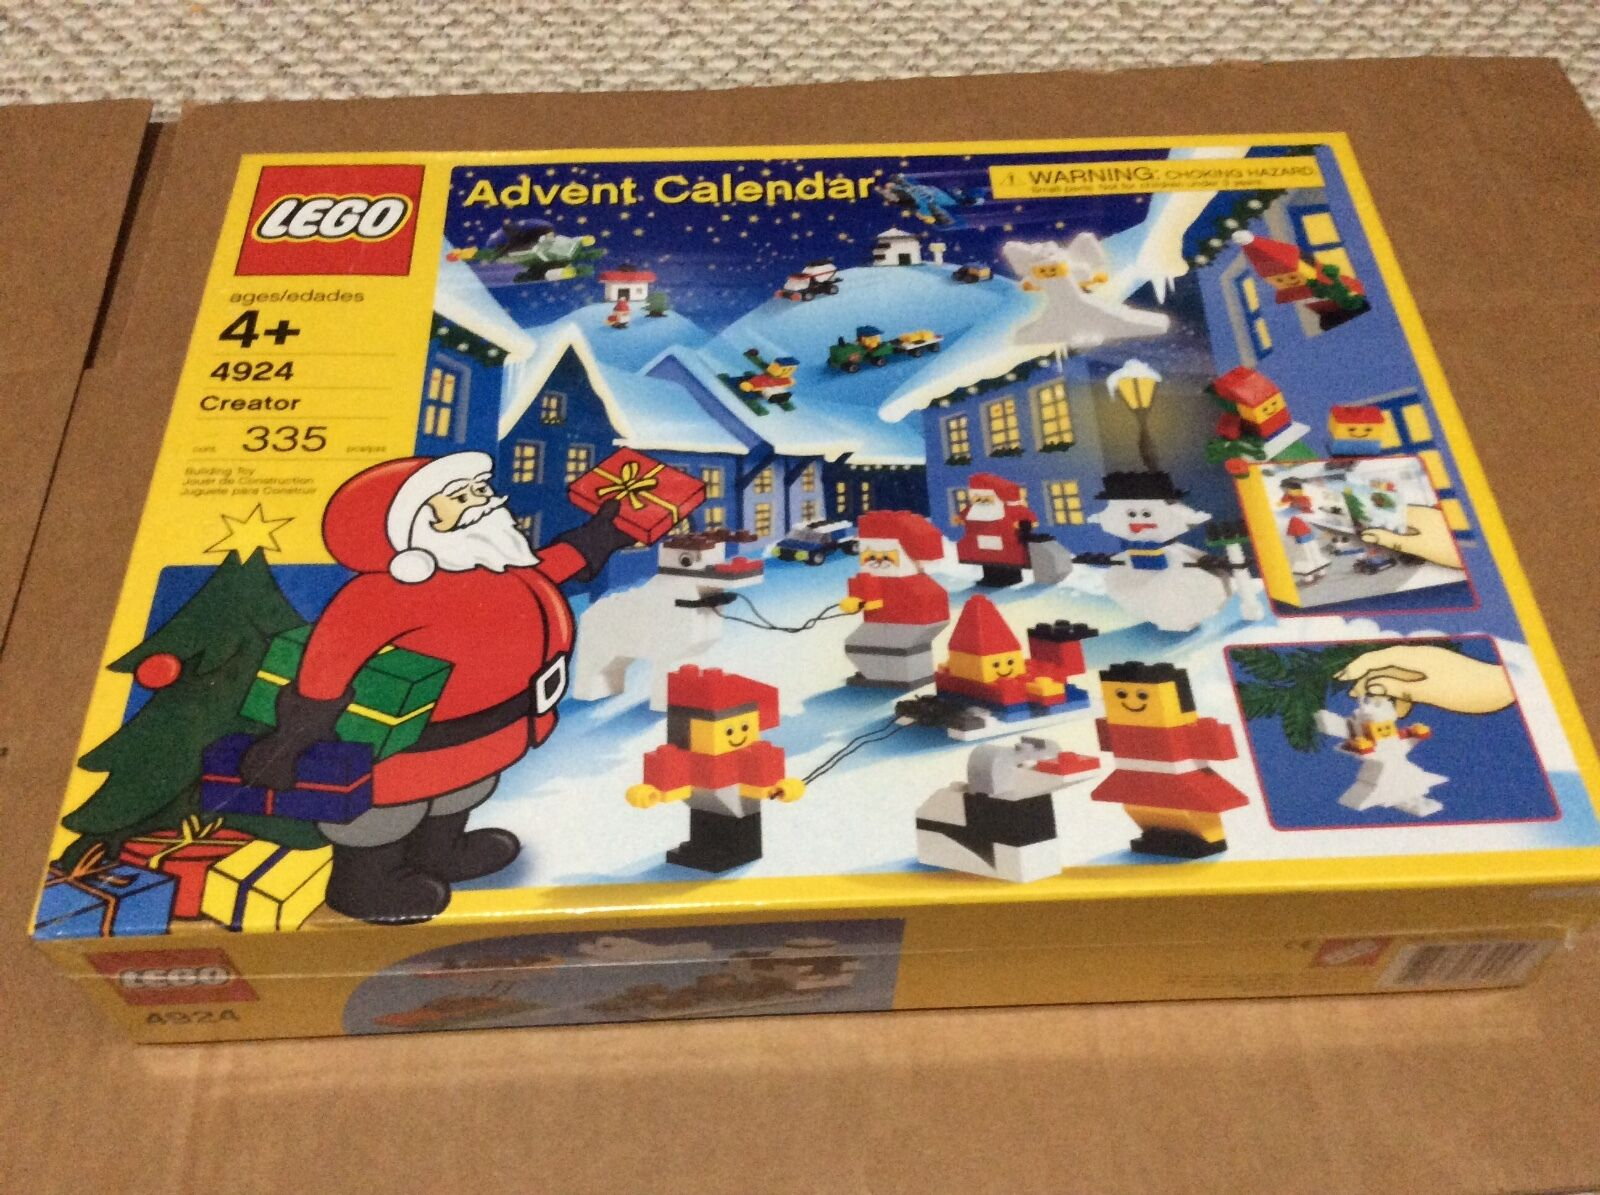 NEW LEGO 4924 Creator Advent Calendar